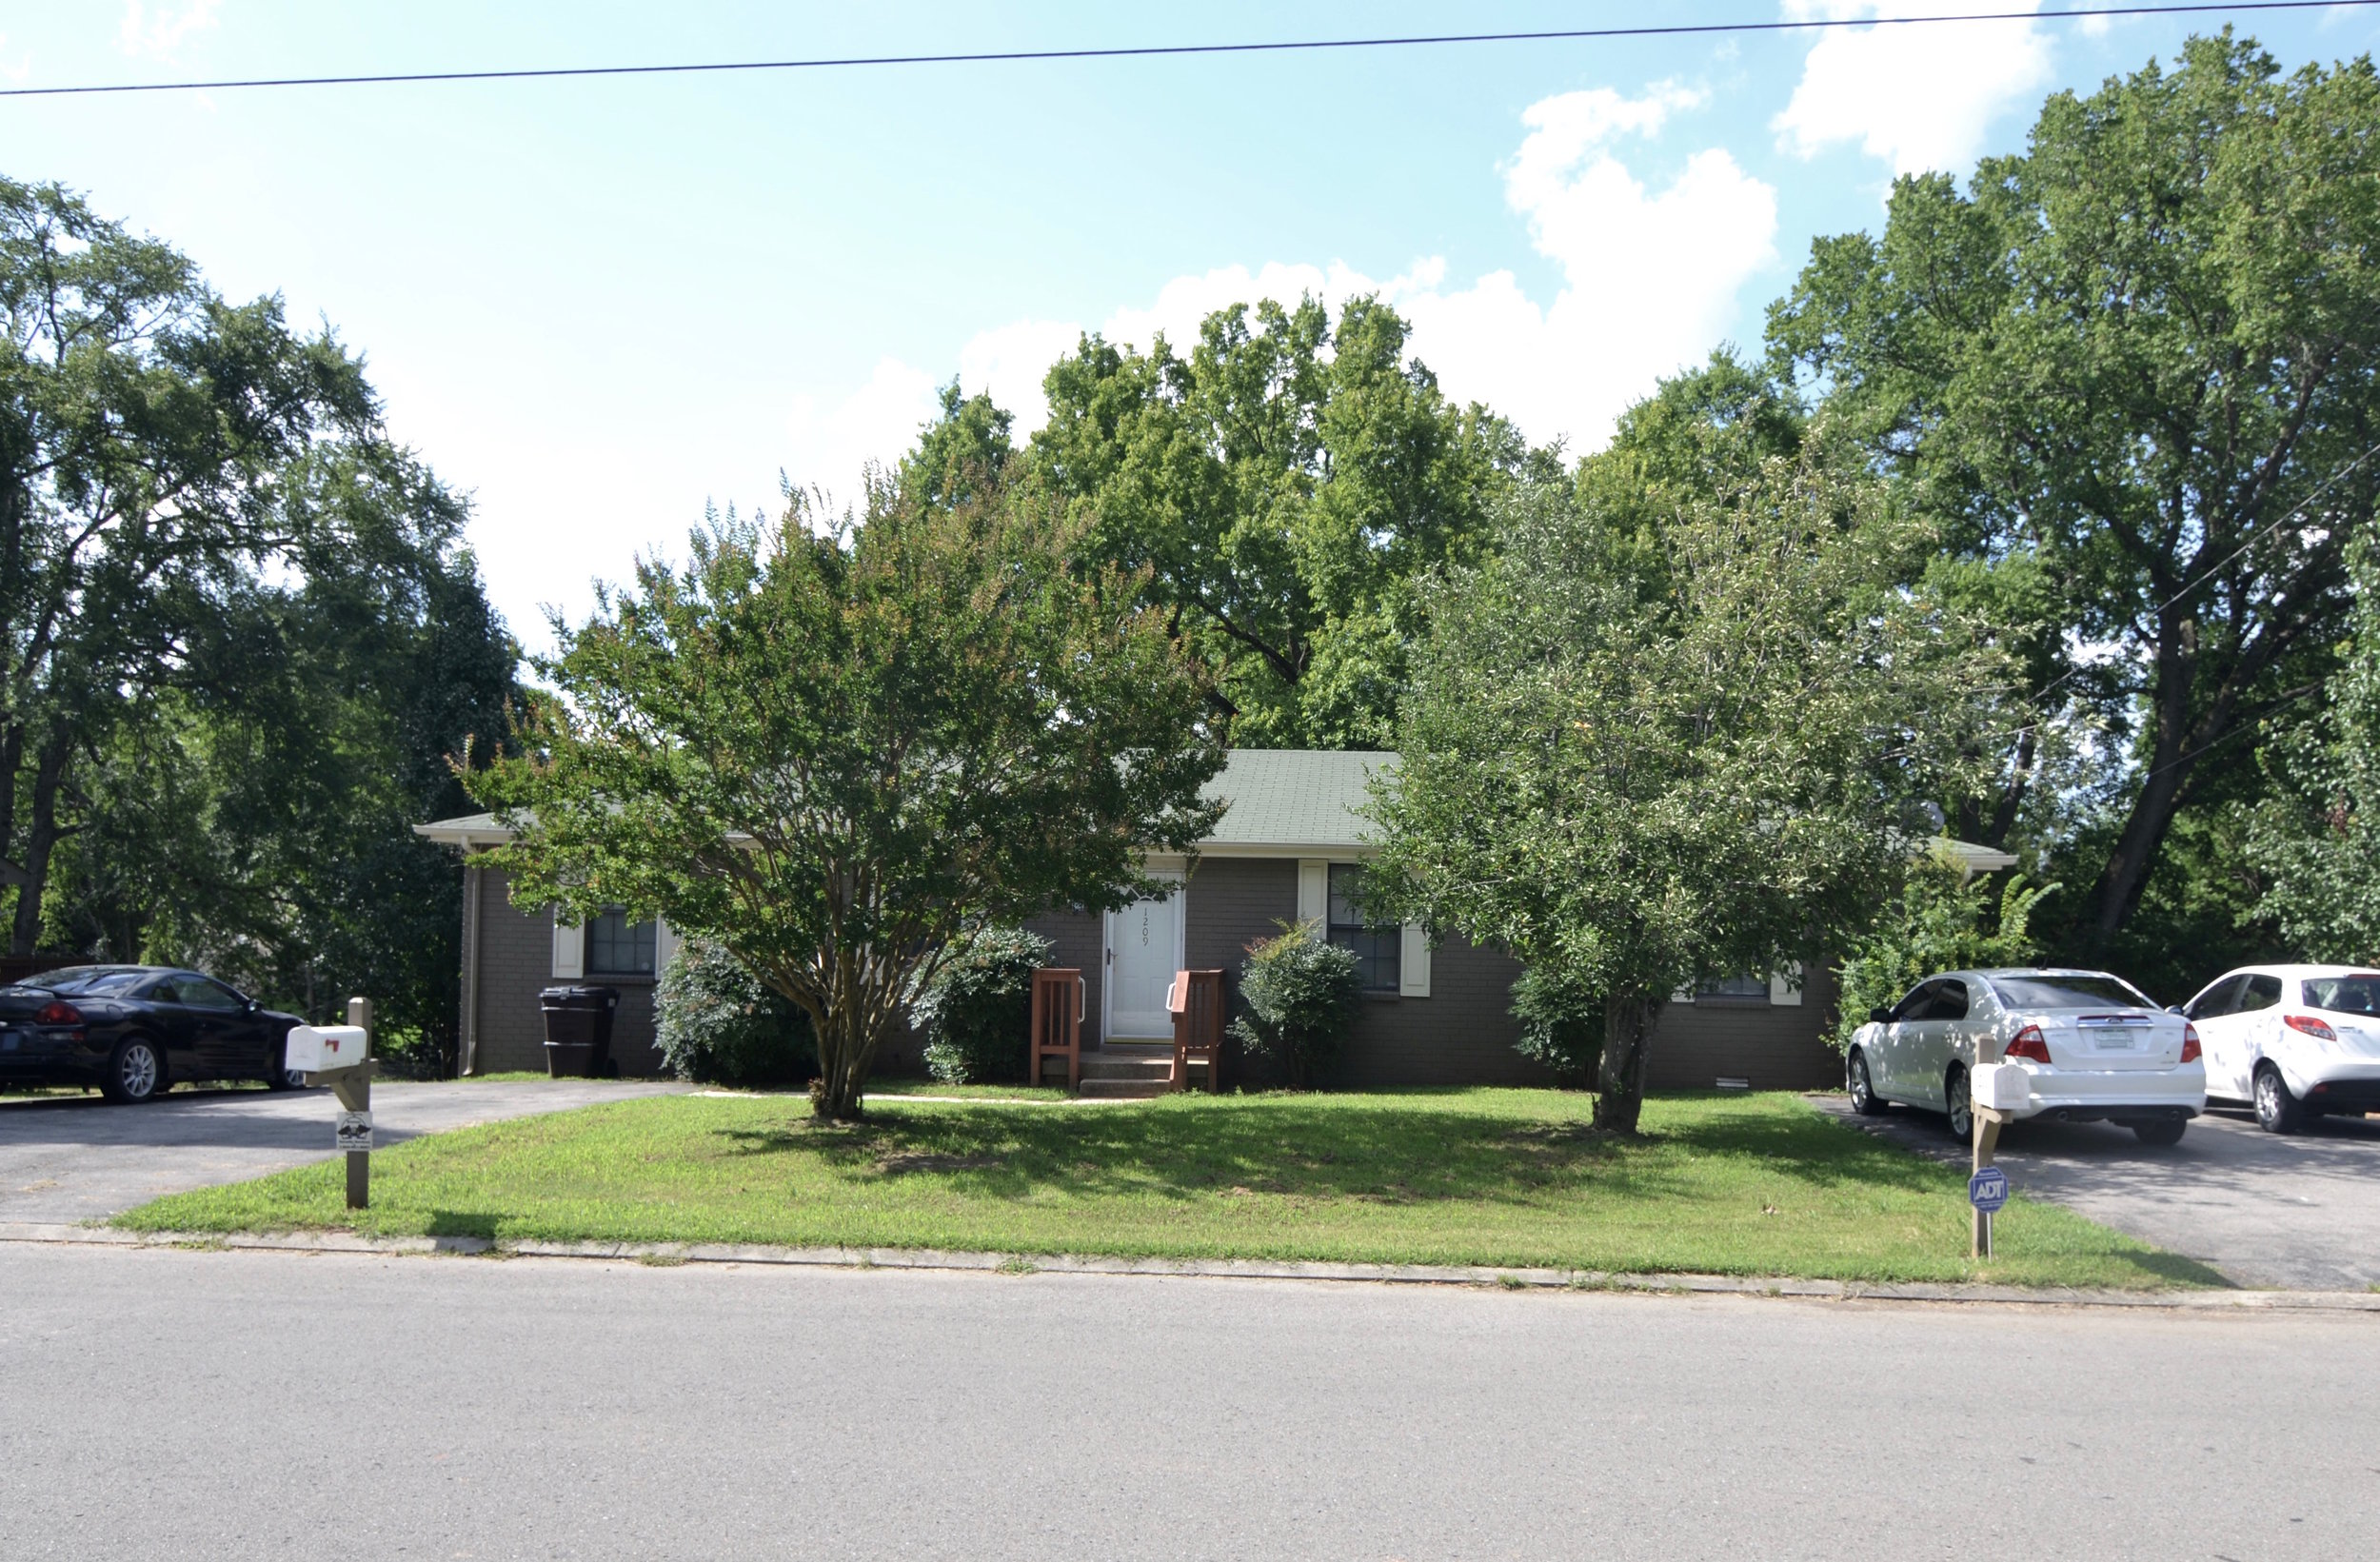 1211 JUST RENTED  1209 RENTED MADISON: 1209/11 Sioux Terrace: Duplex: 2 Br, 1 Ba 100% Remodel Just Completed